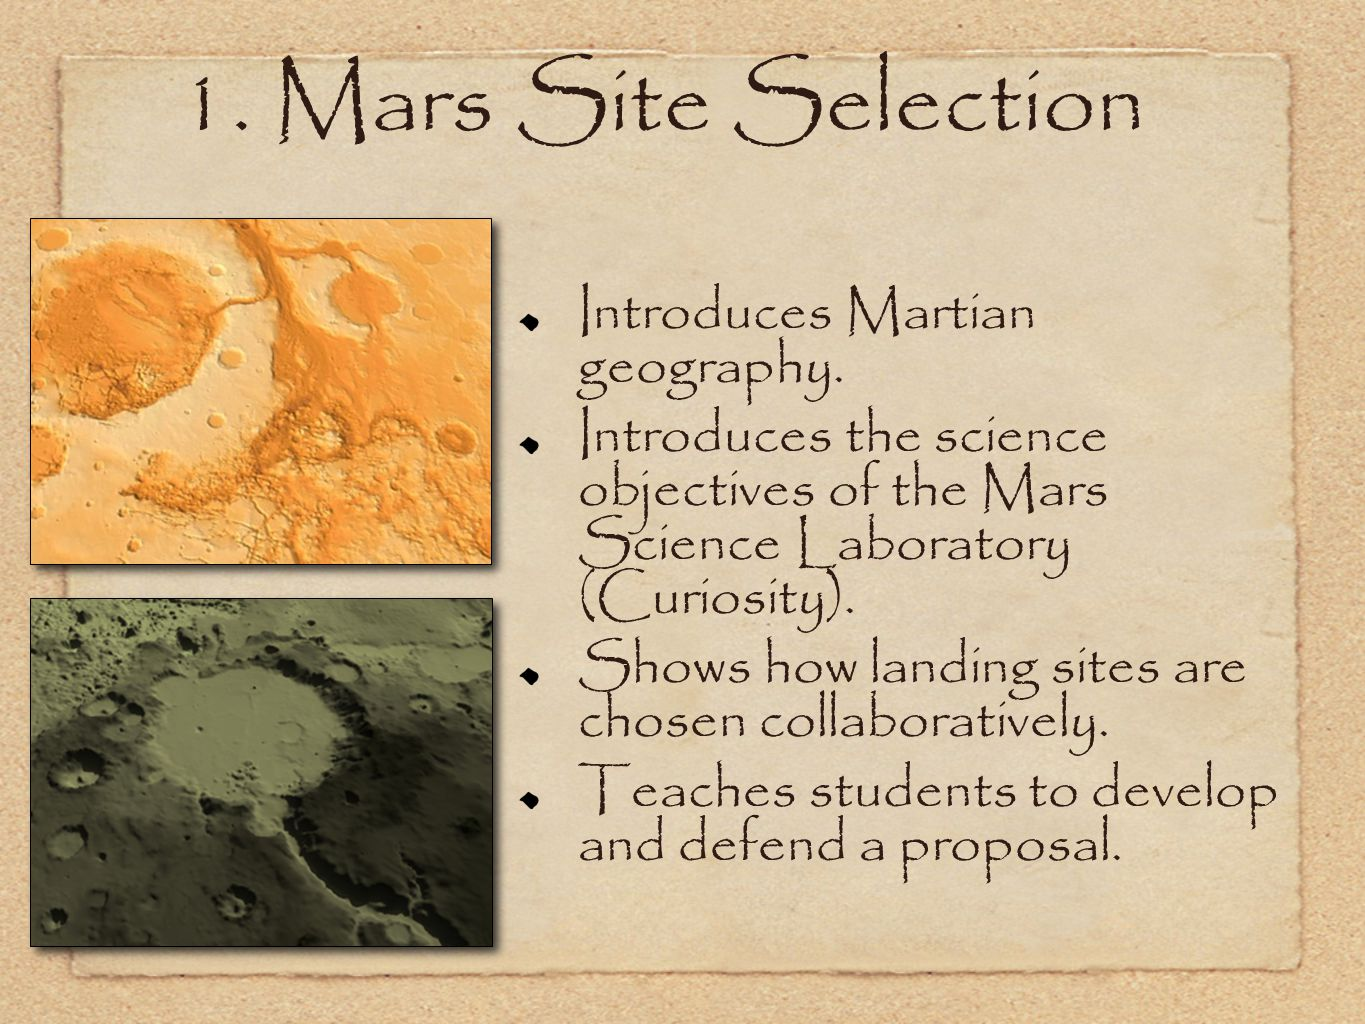 1. Mars Site Selection Introduces Martian geography.